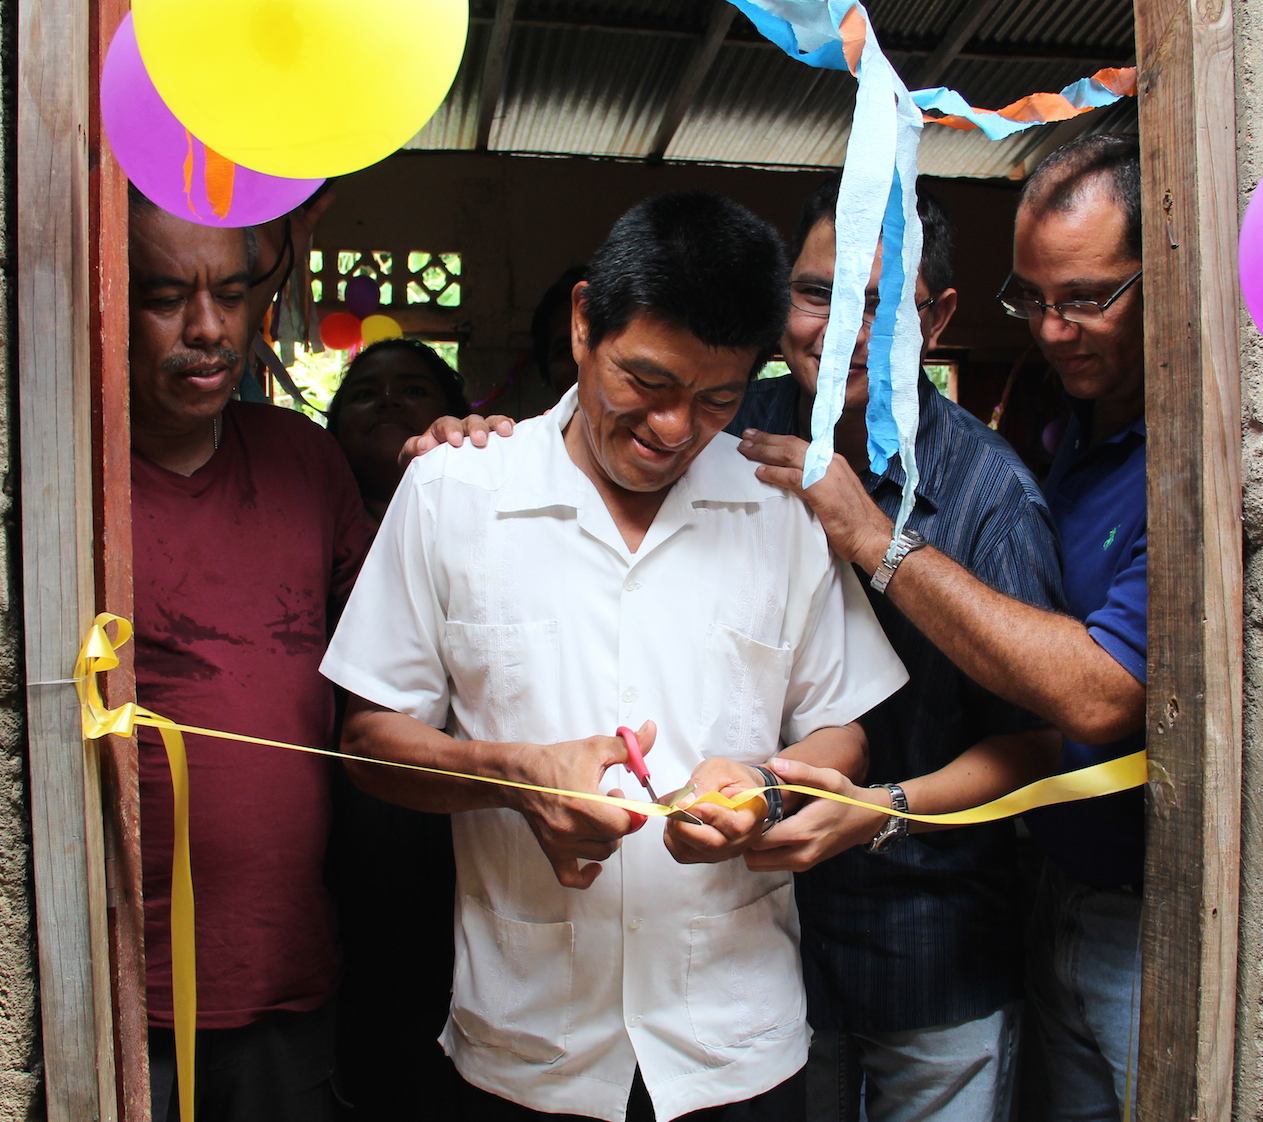 Iglesia Aposento Alto's Pastor Eucebio Caceres cuts the ribbon at the official launch of the LCI